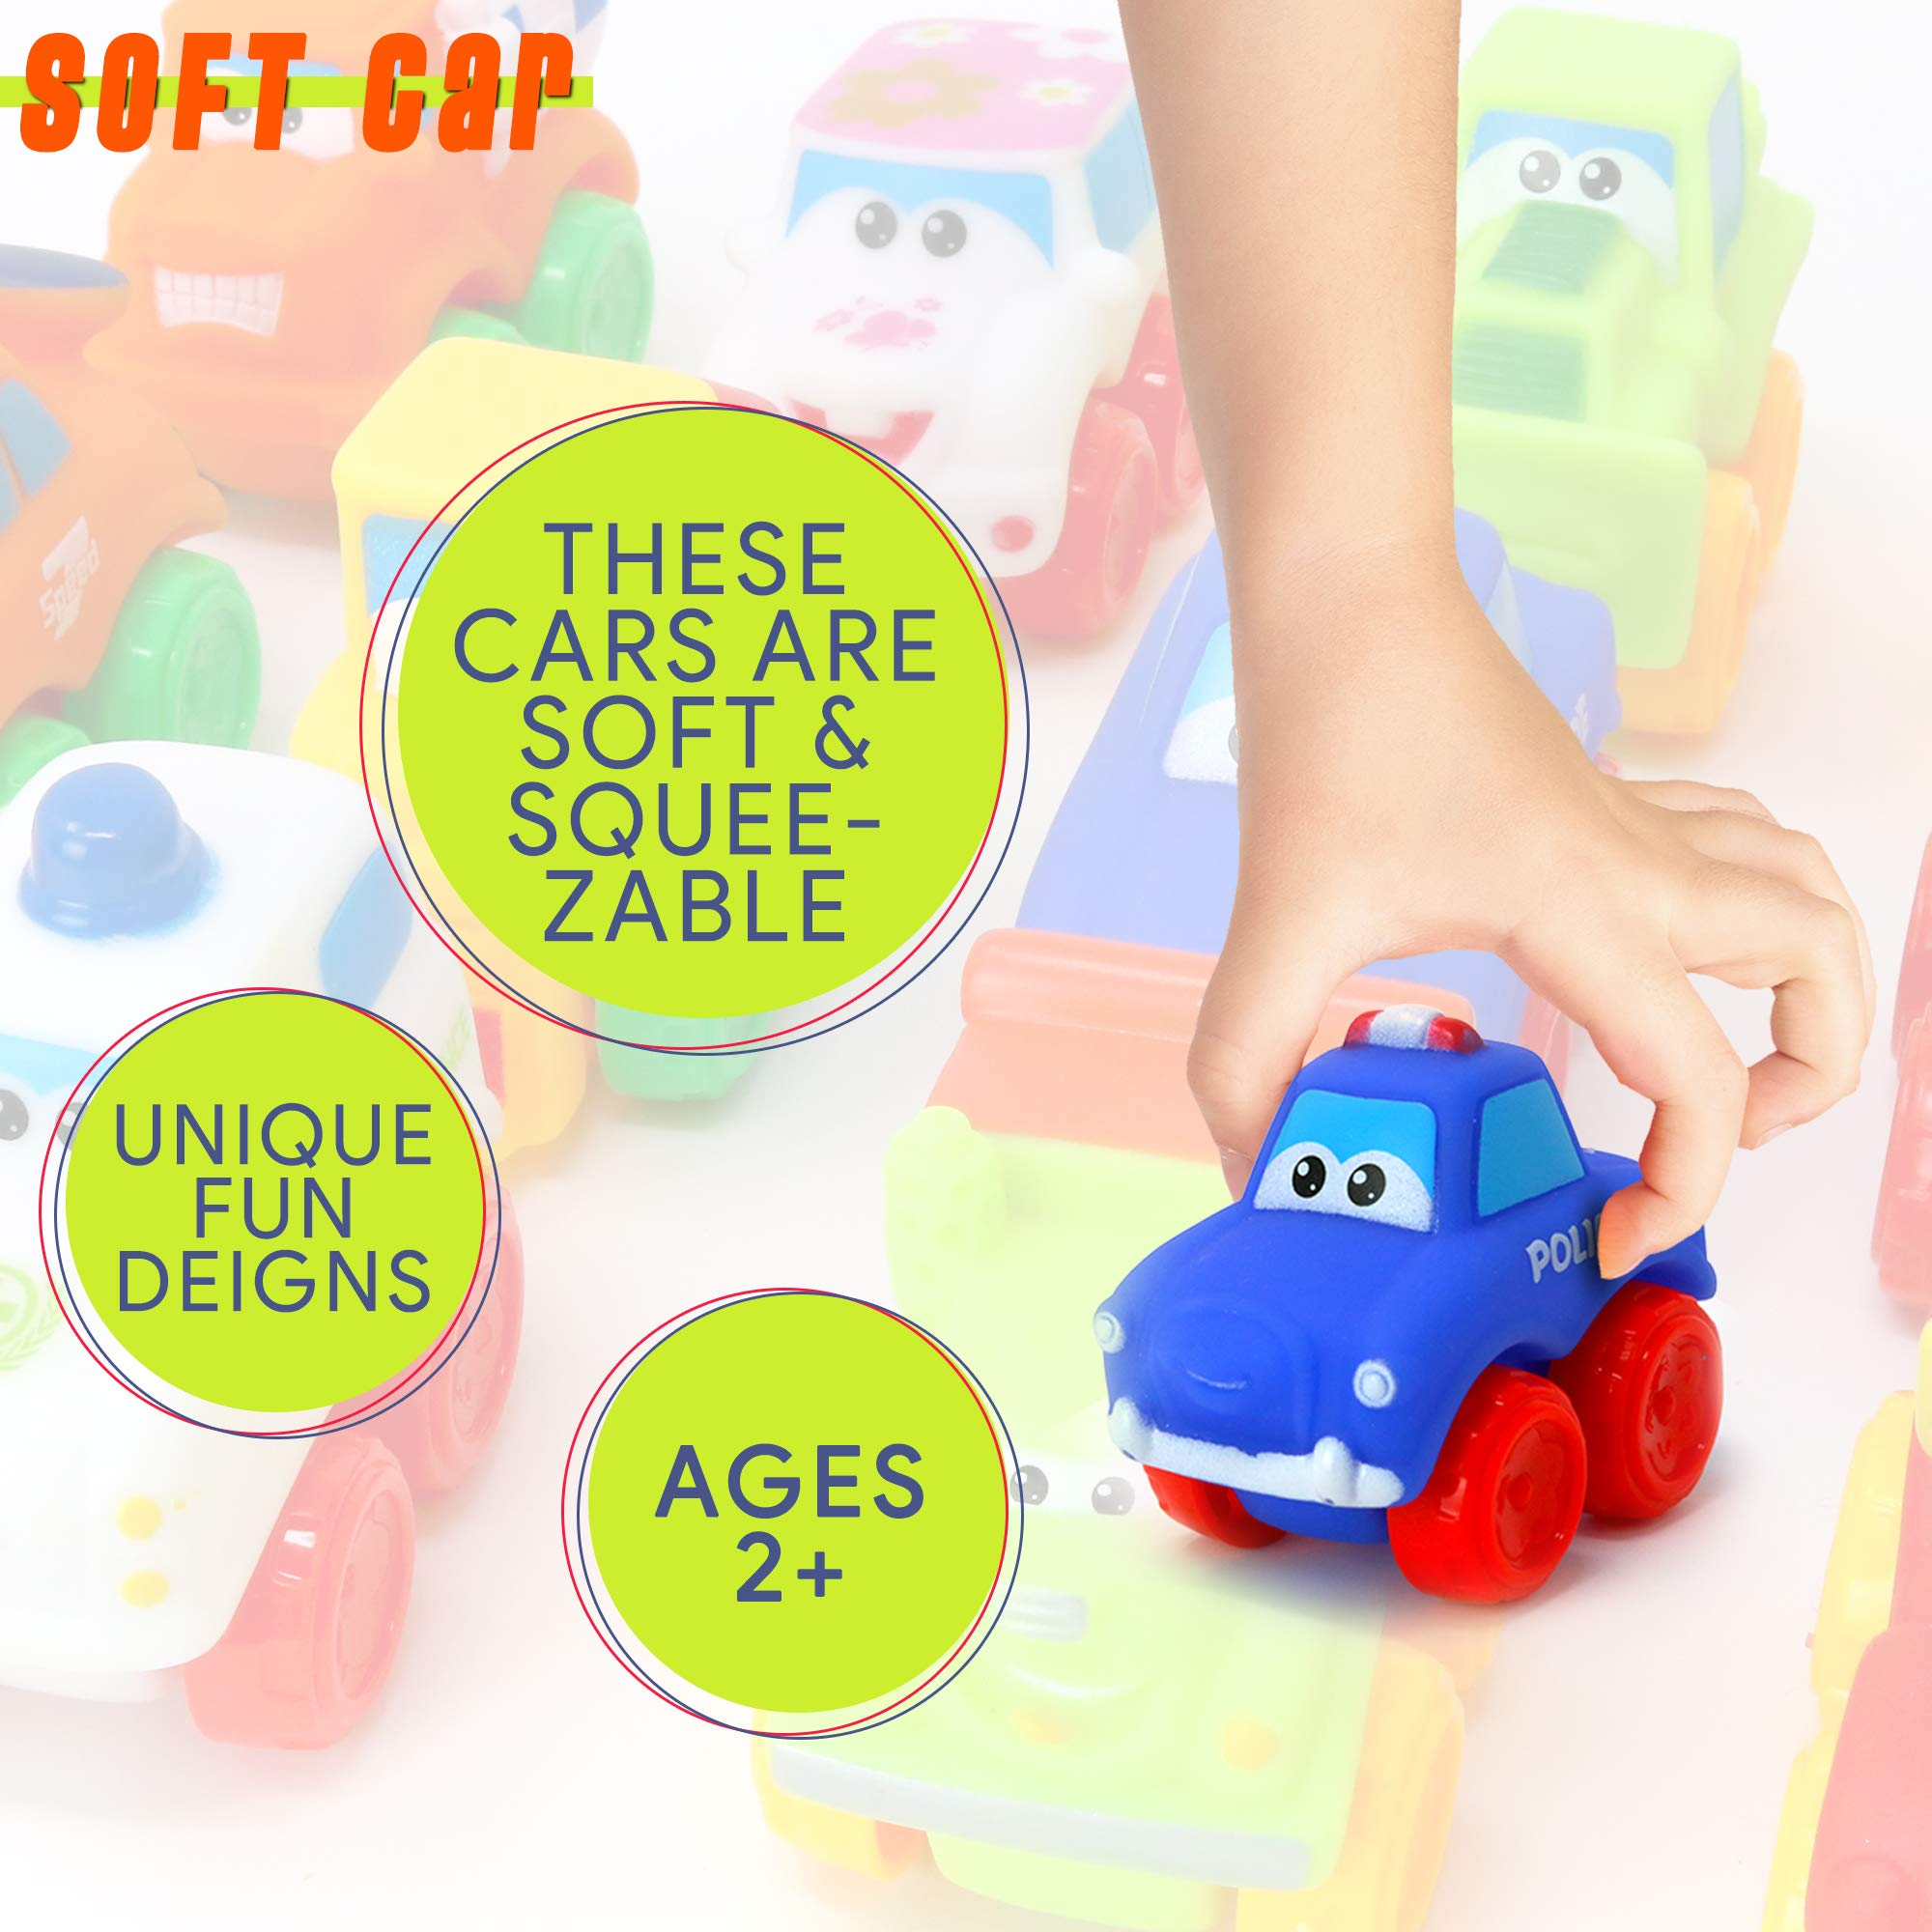 Big Mo's Toys Baby Cars - Soft Rubber Toy Vehicles for Babies and Toddlers - 12 Pieces by Big Mo's Toys (Image #4)